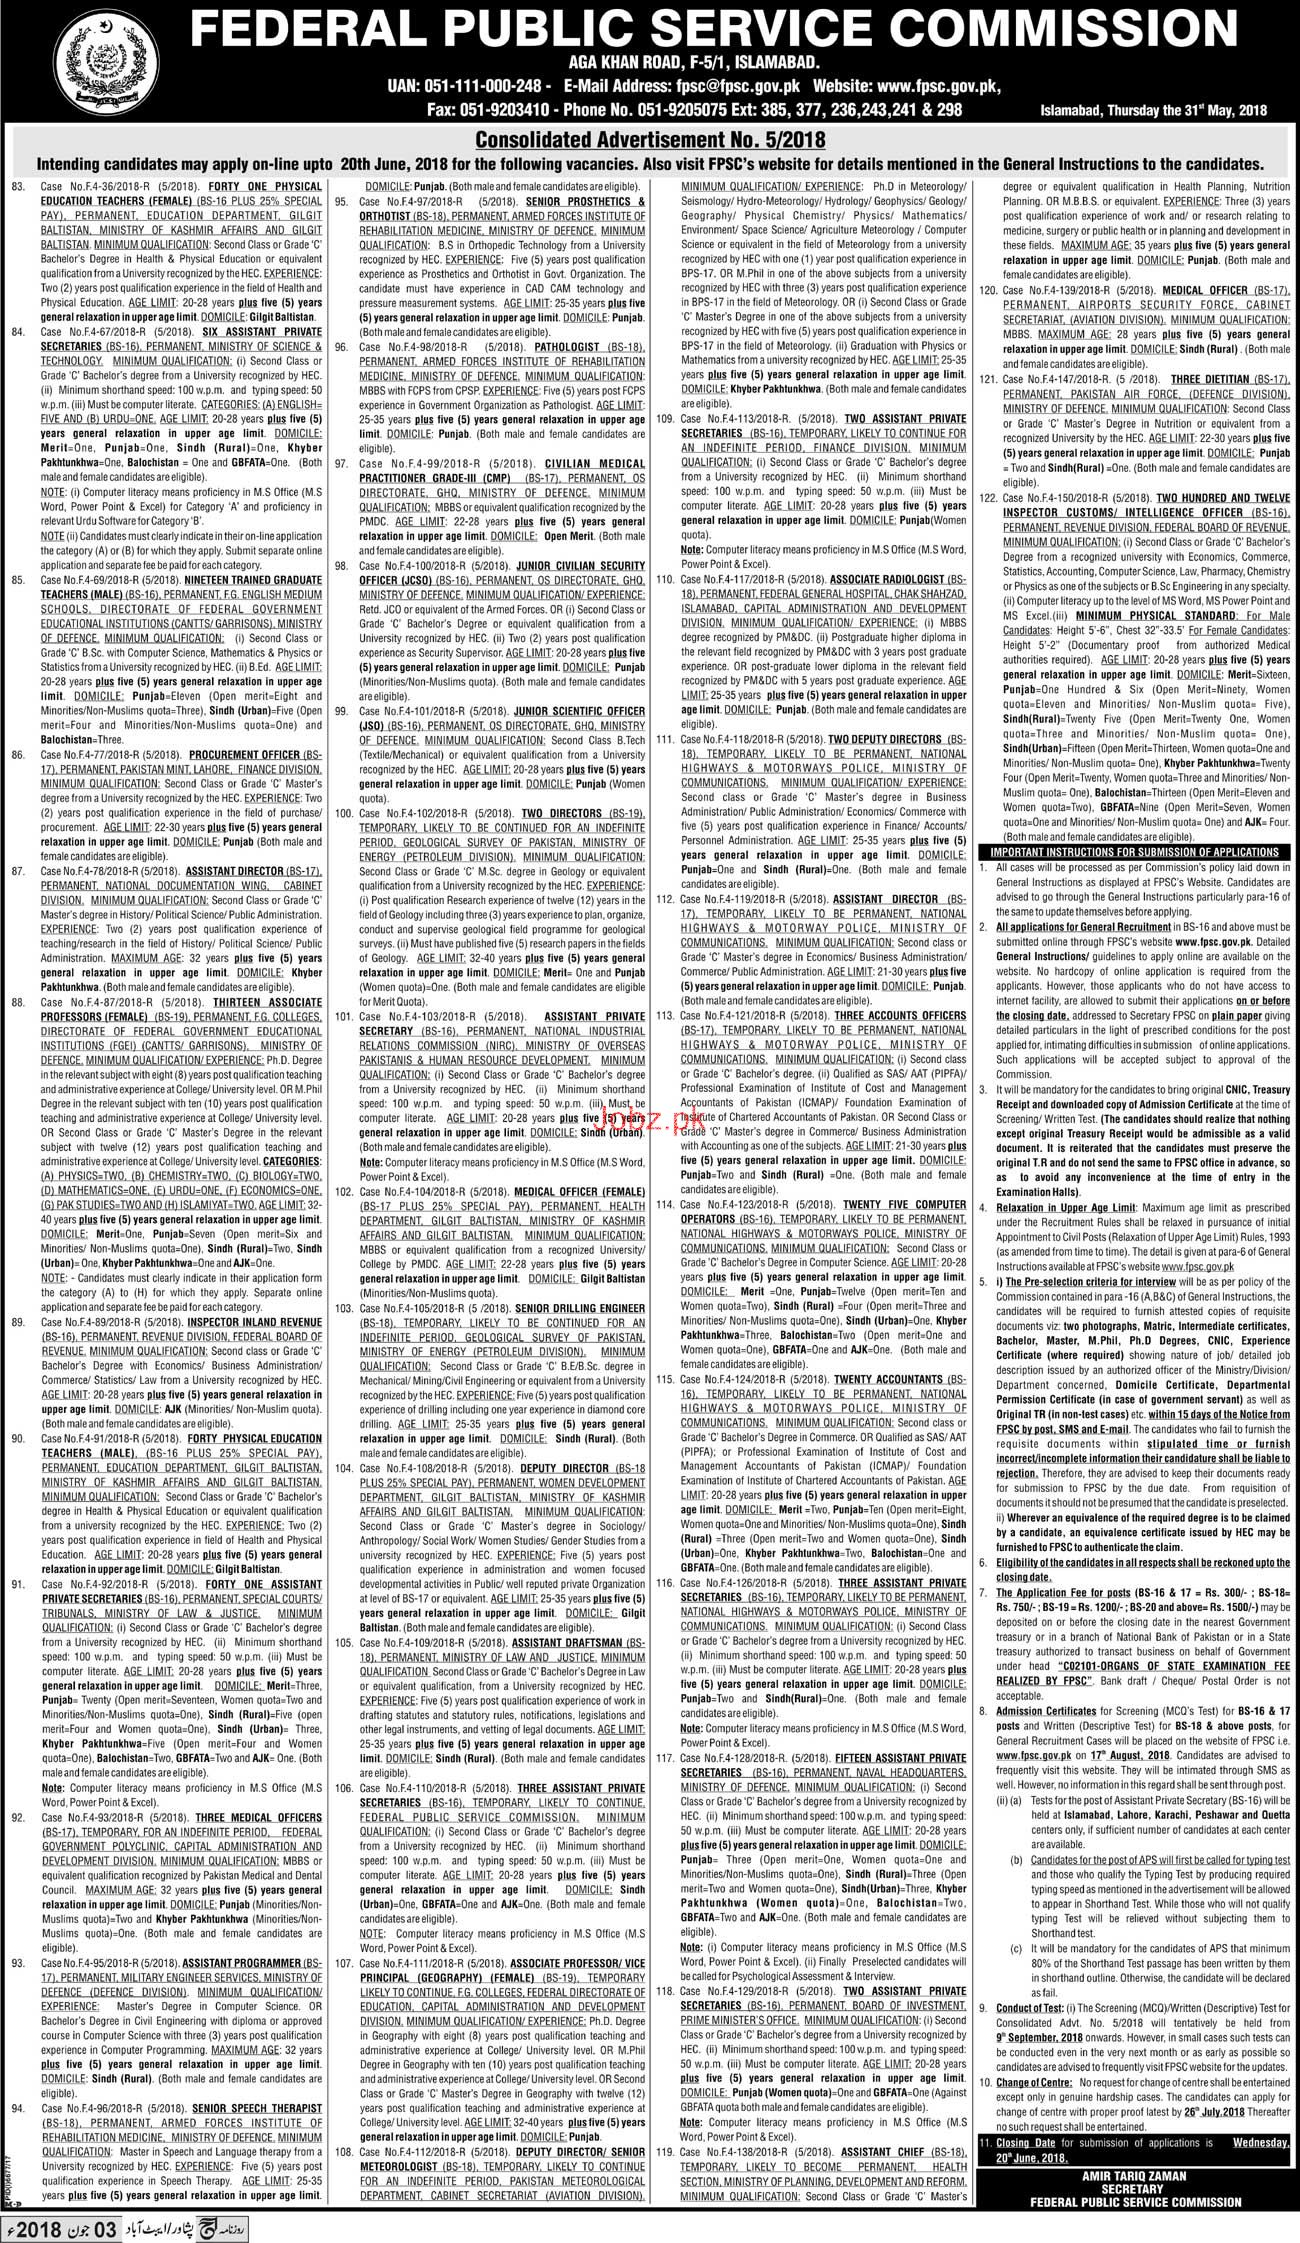 Federal Public Service Commission FPSC Job 2018 2019 Job